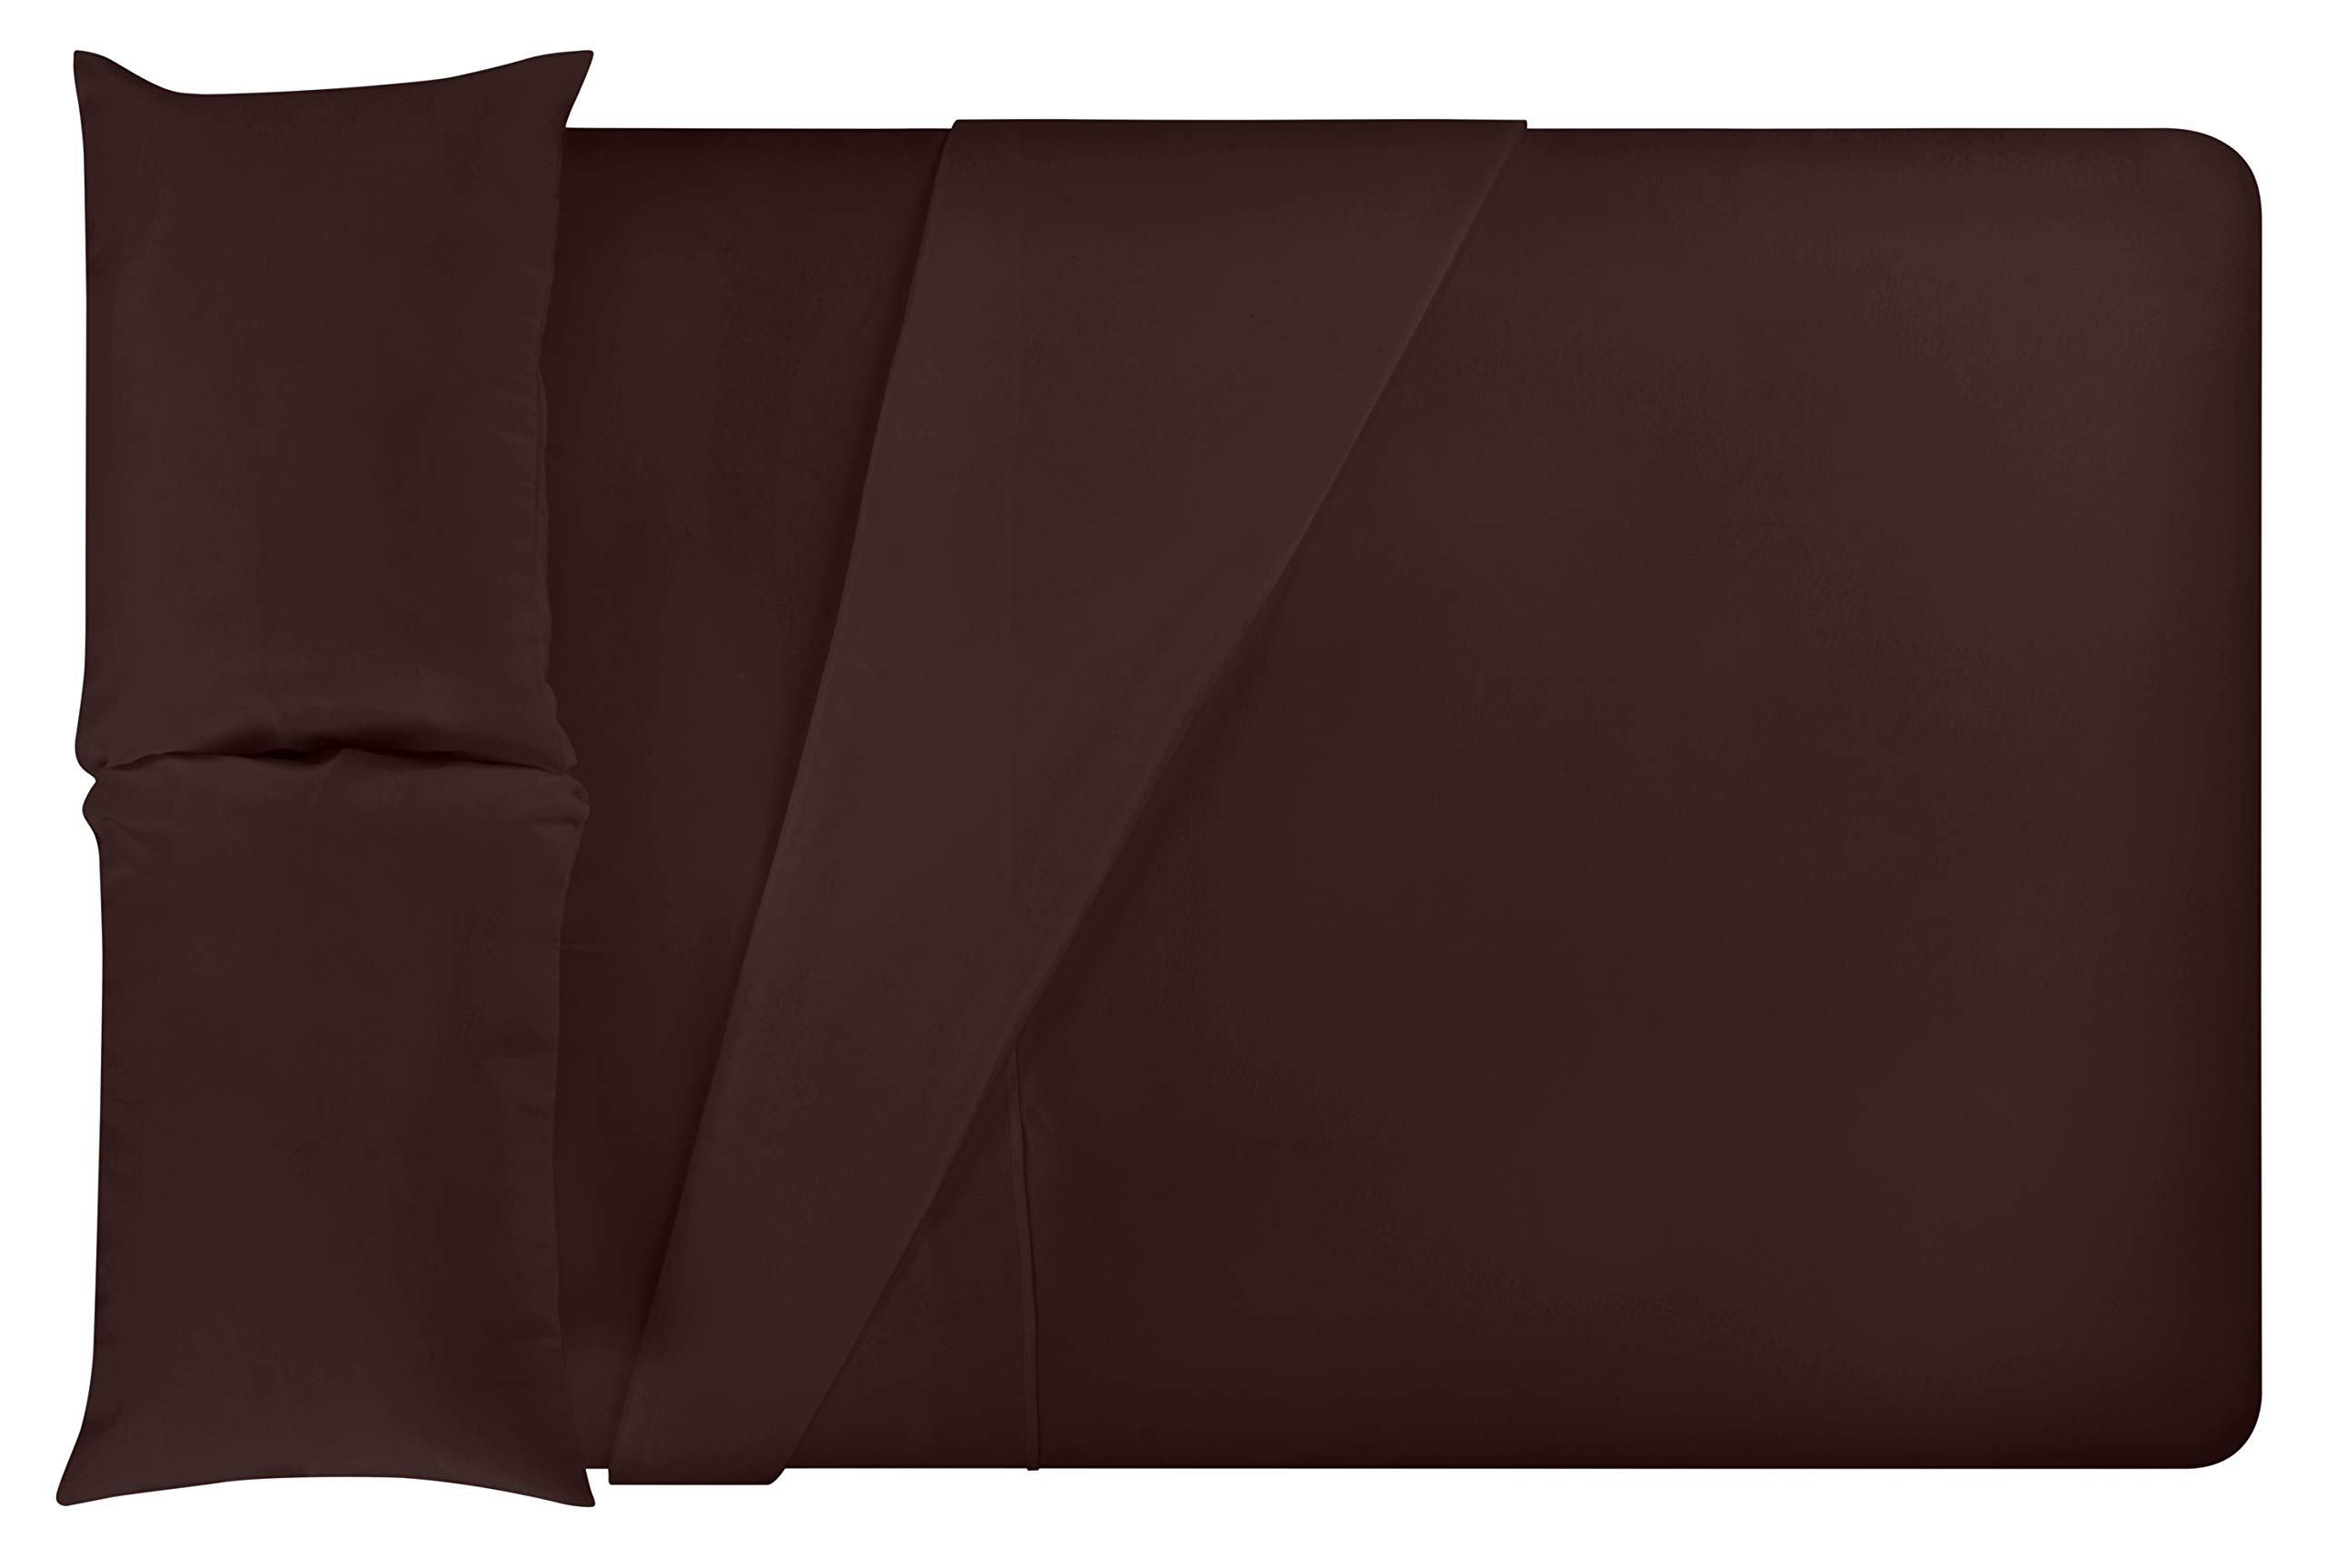 LuxClub 4 PC Microfiber and Bamboo Sheet Set: Bamboo Bedding Sheets with Microfiber - Softer and More Breathable Than Cotton - Machine Washable, Brown, Queen